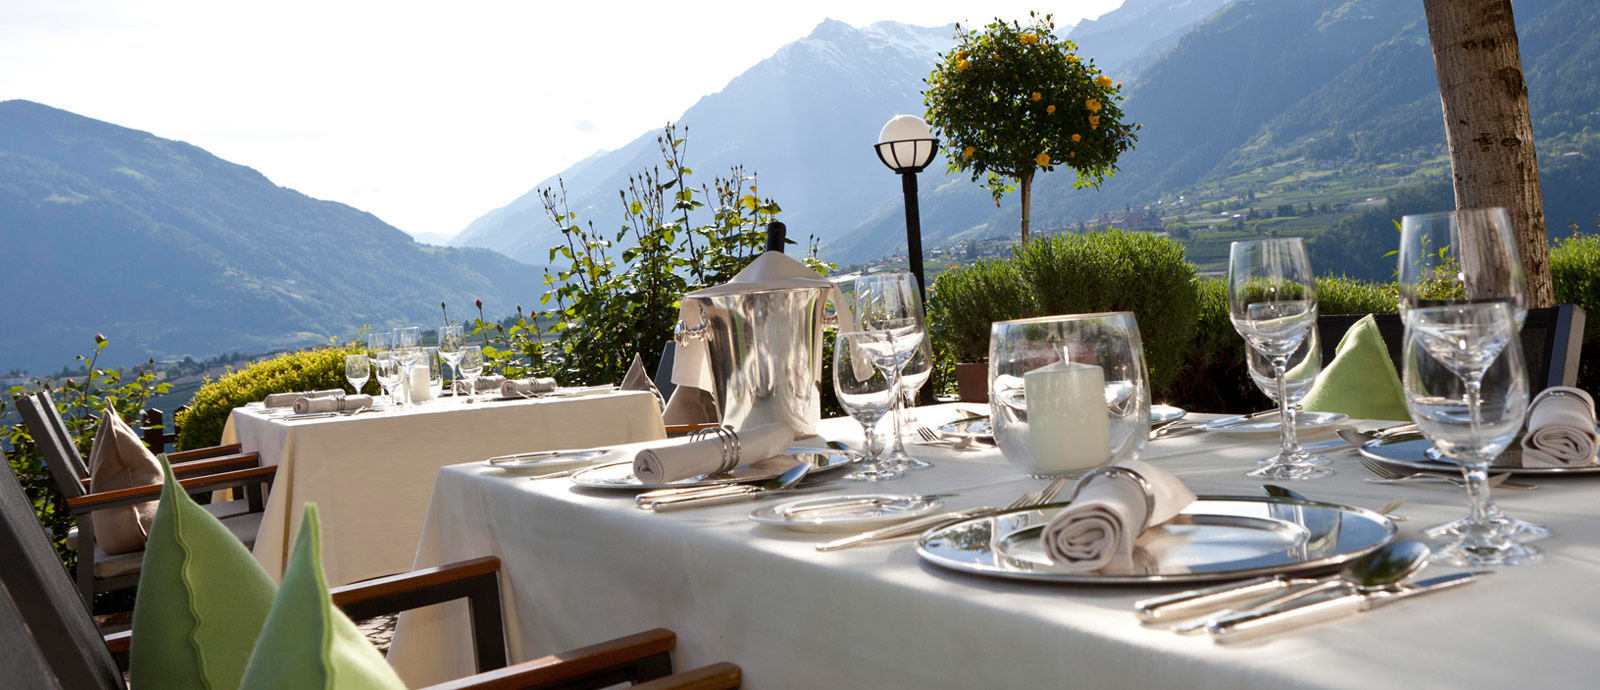 Wellness Hotel Hohenwart, holiday in South Tyrol